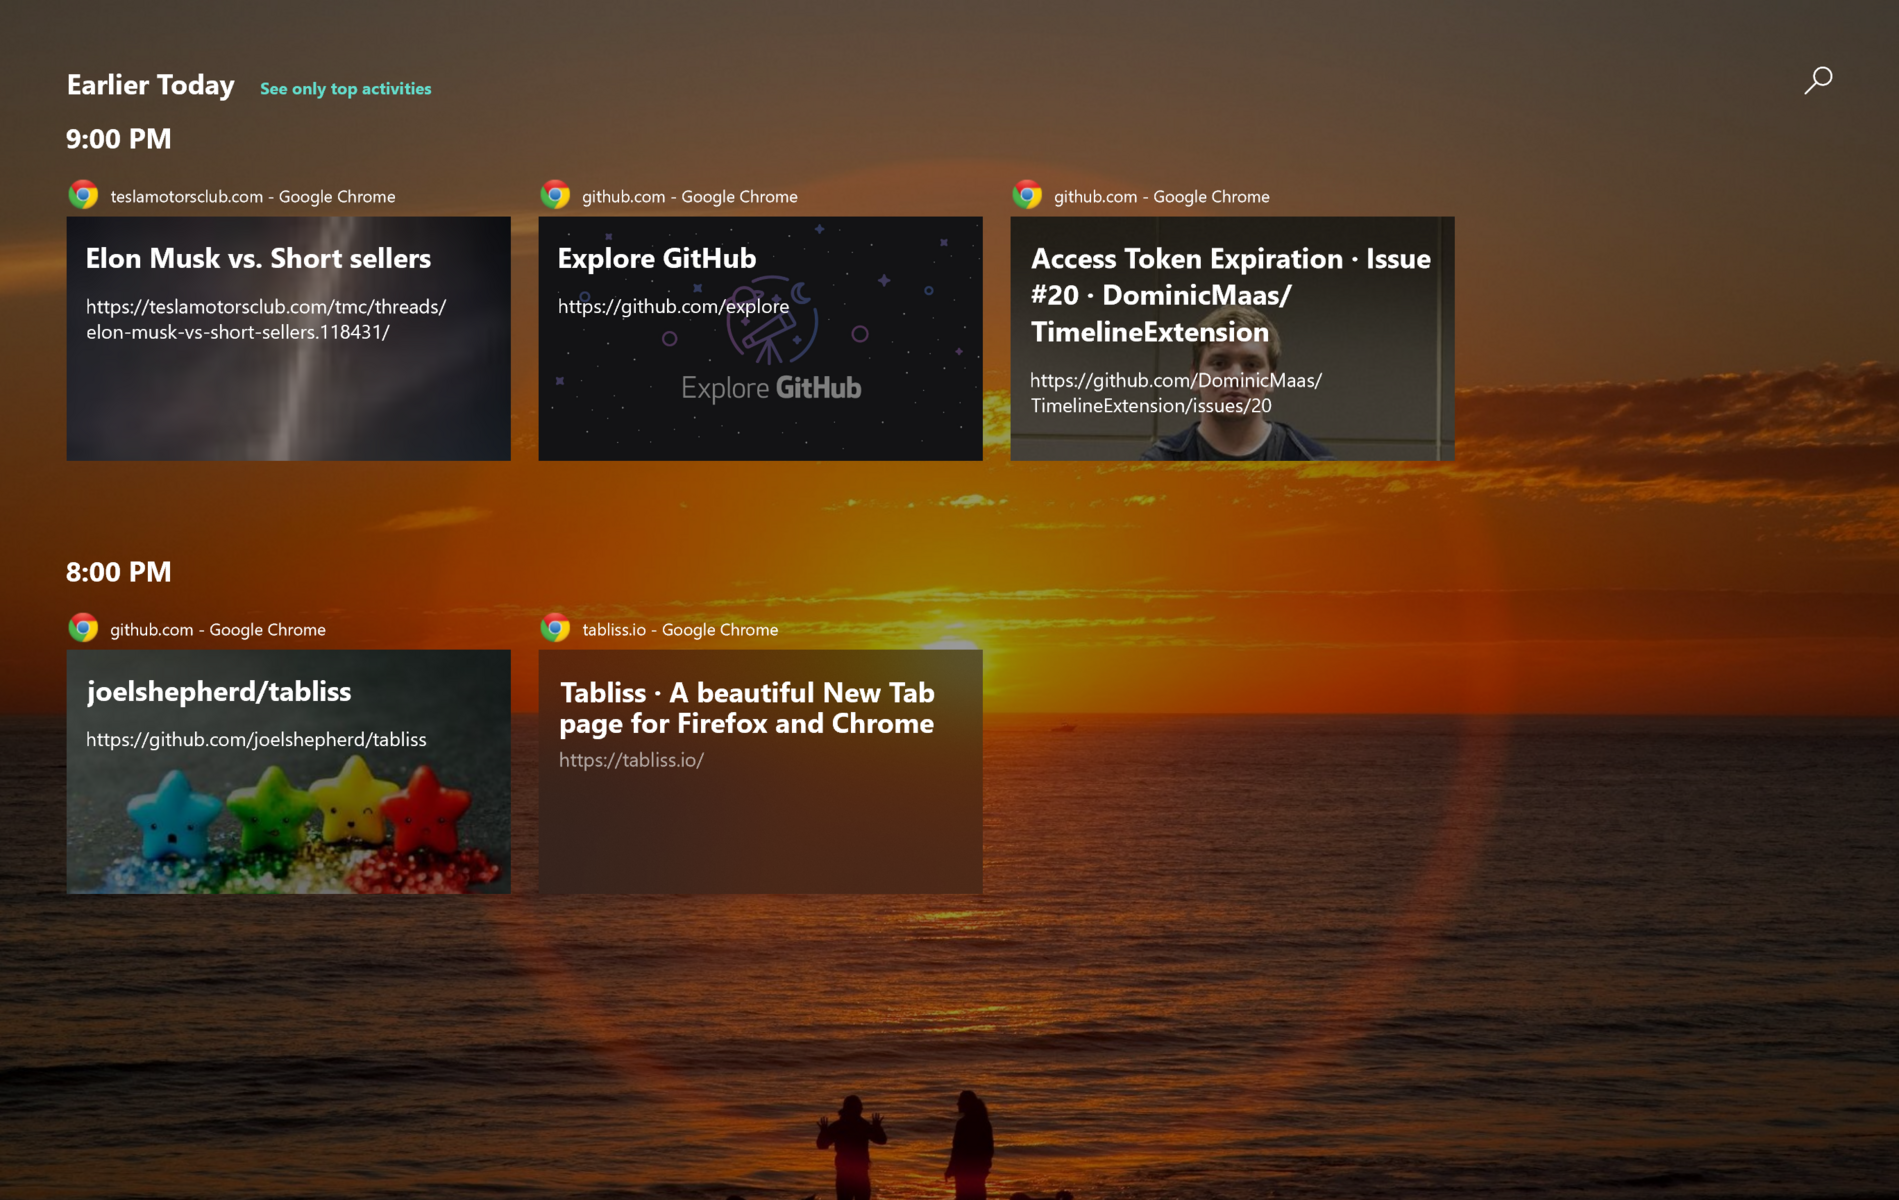 Developer brings Windows Timeline support to Google Chrome and